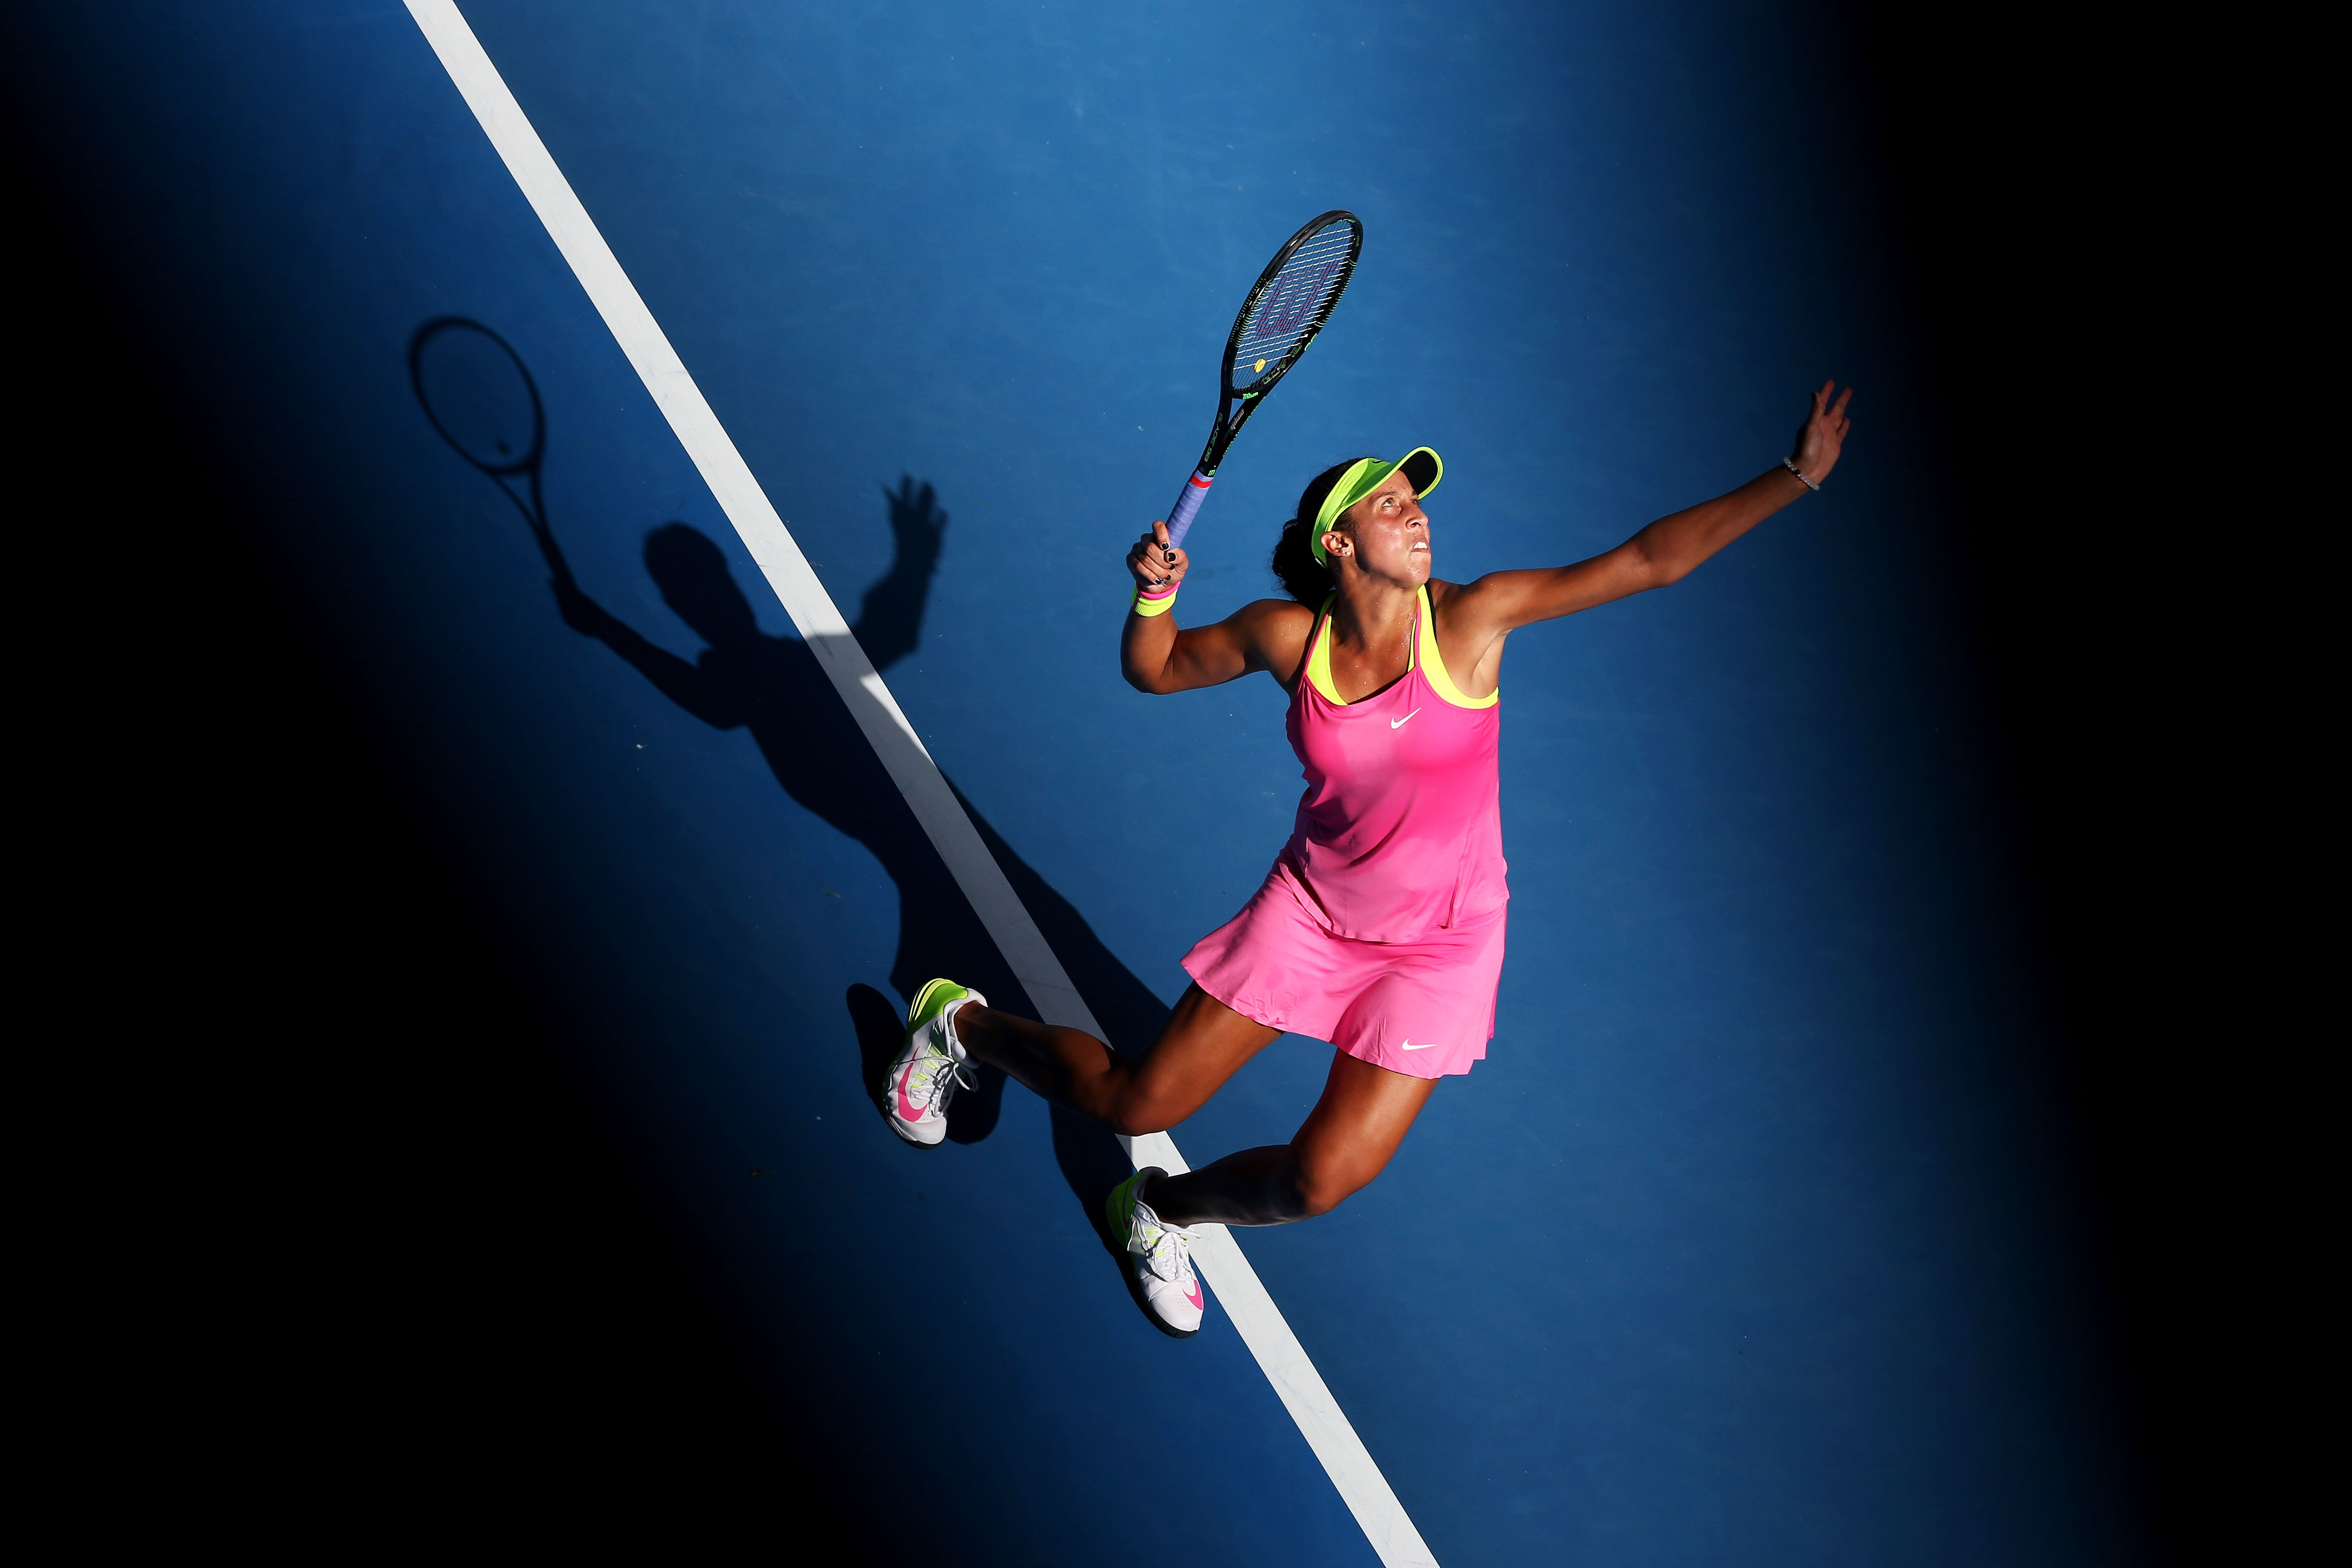 Just like Bouchard, Nike made the right choice with this hot pink number.